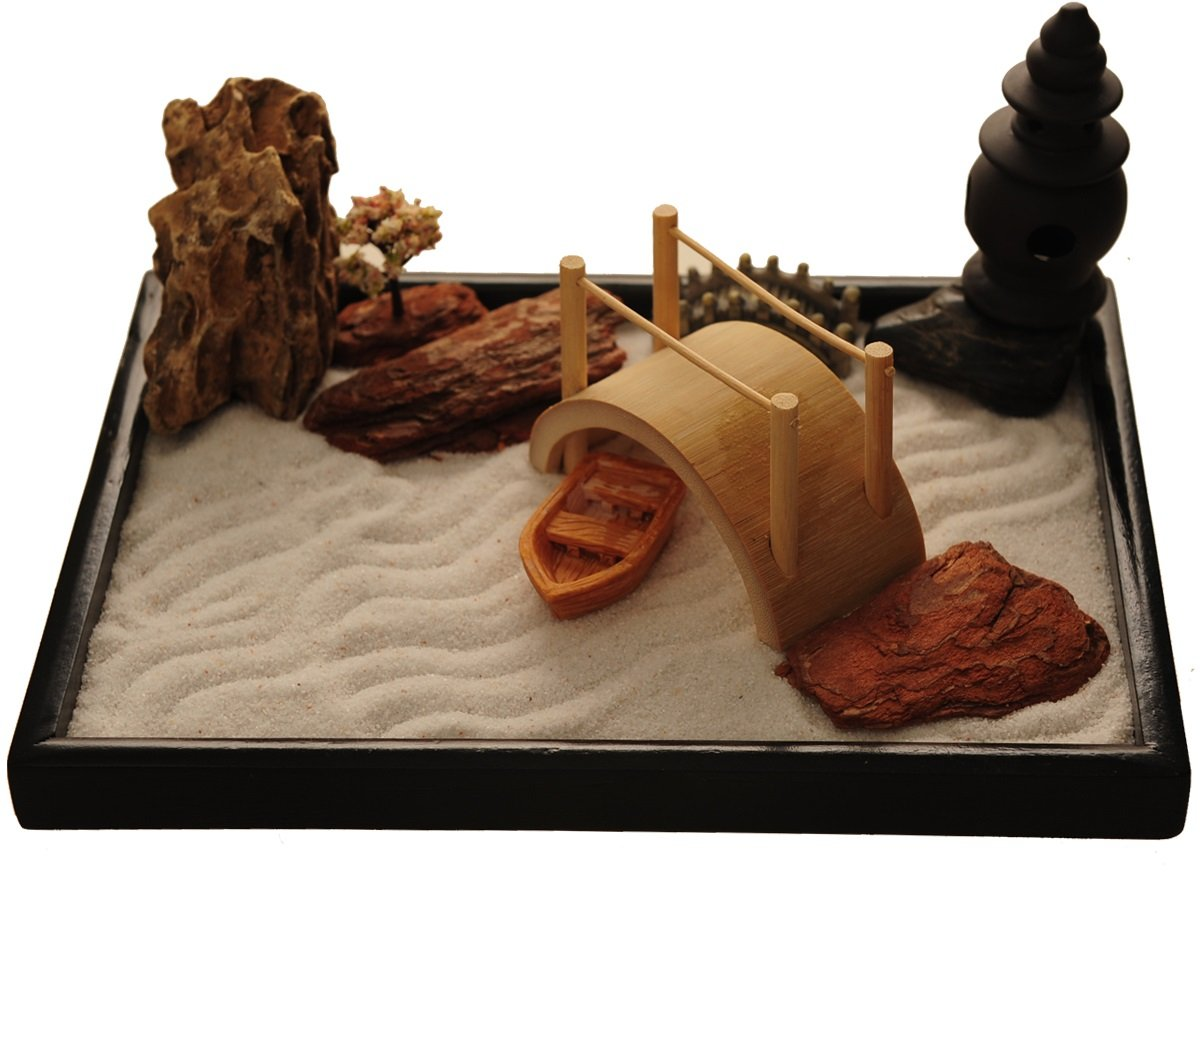 ICNBUYS Zen Garden with Boat Bridge Japanese Censers Set with Free Rake and Pushing Sand Pen Base Tray Dimensions 10 x 7 x 0.4 inches